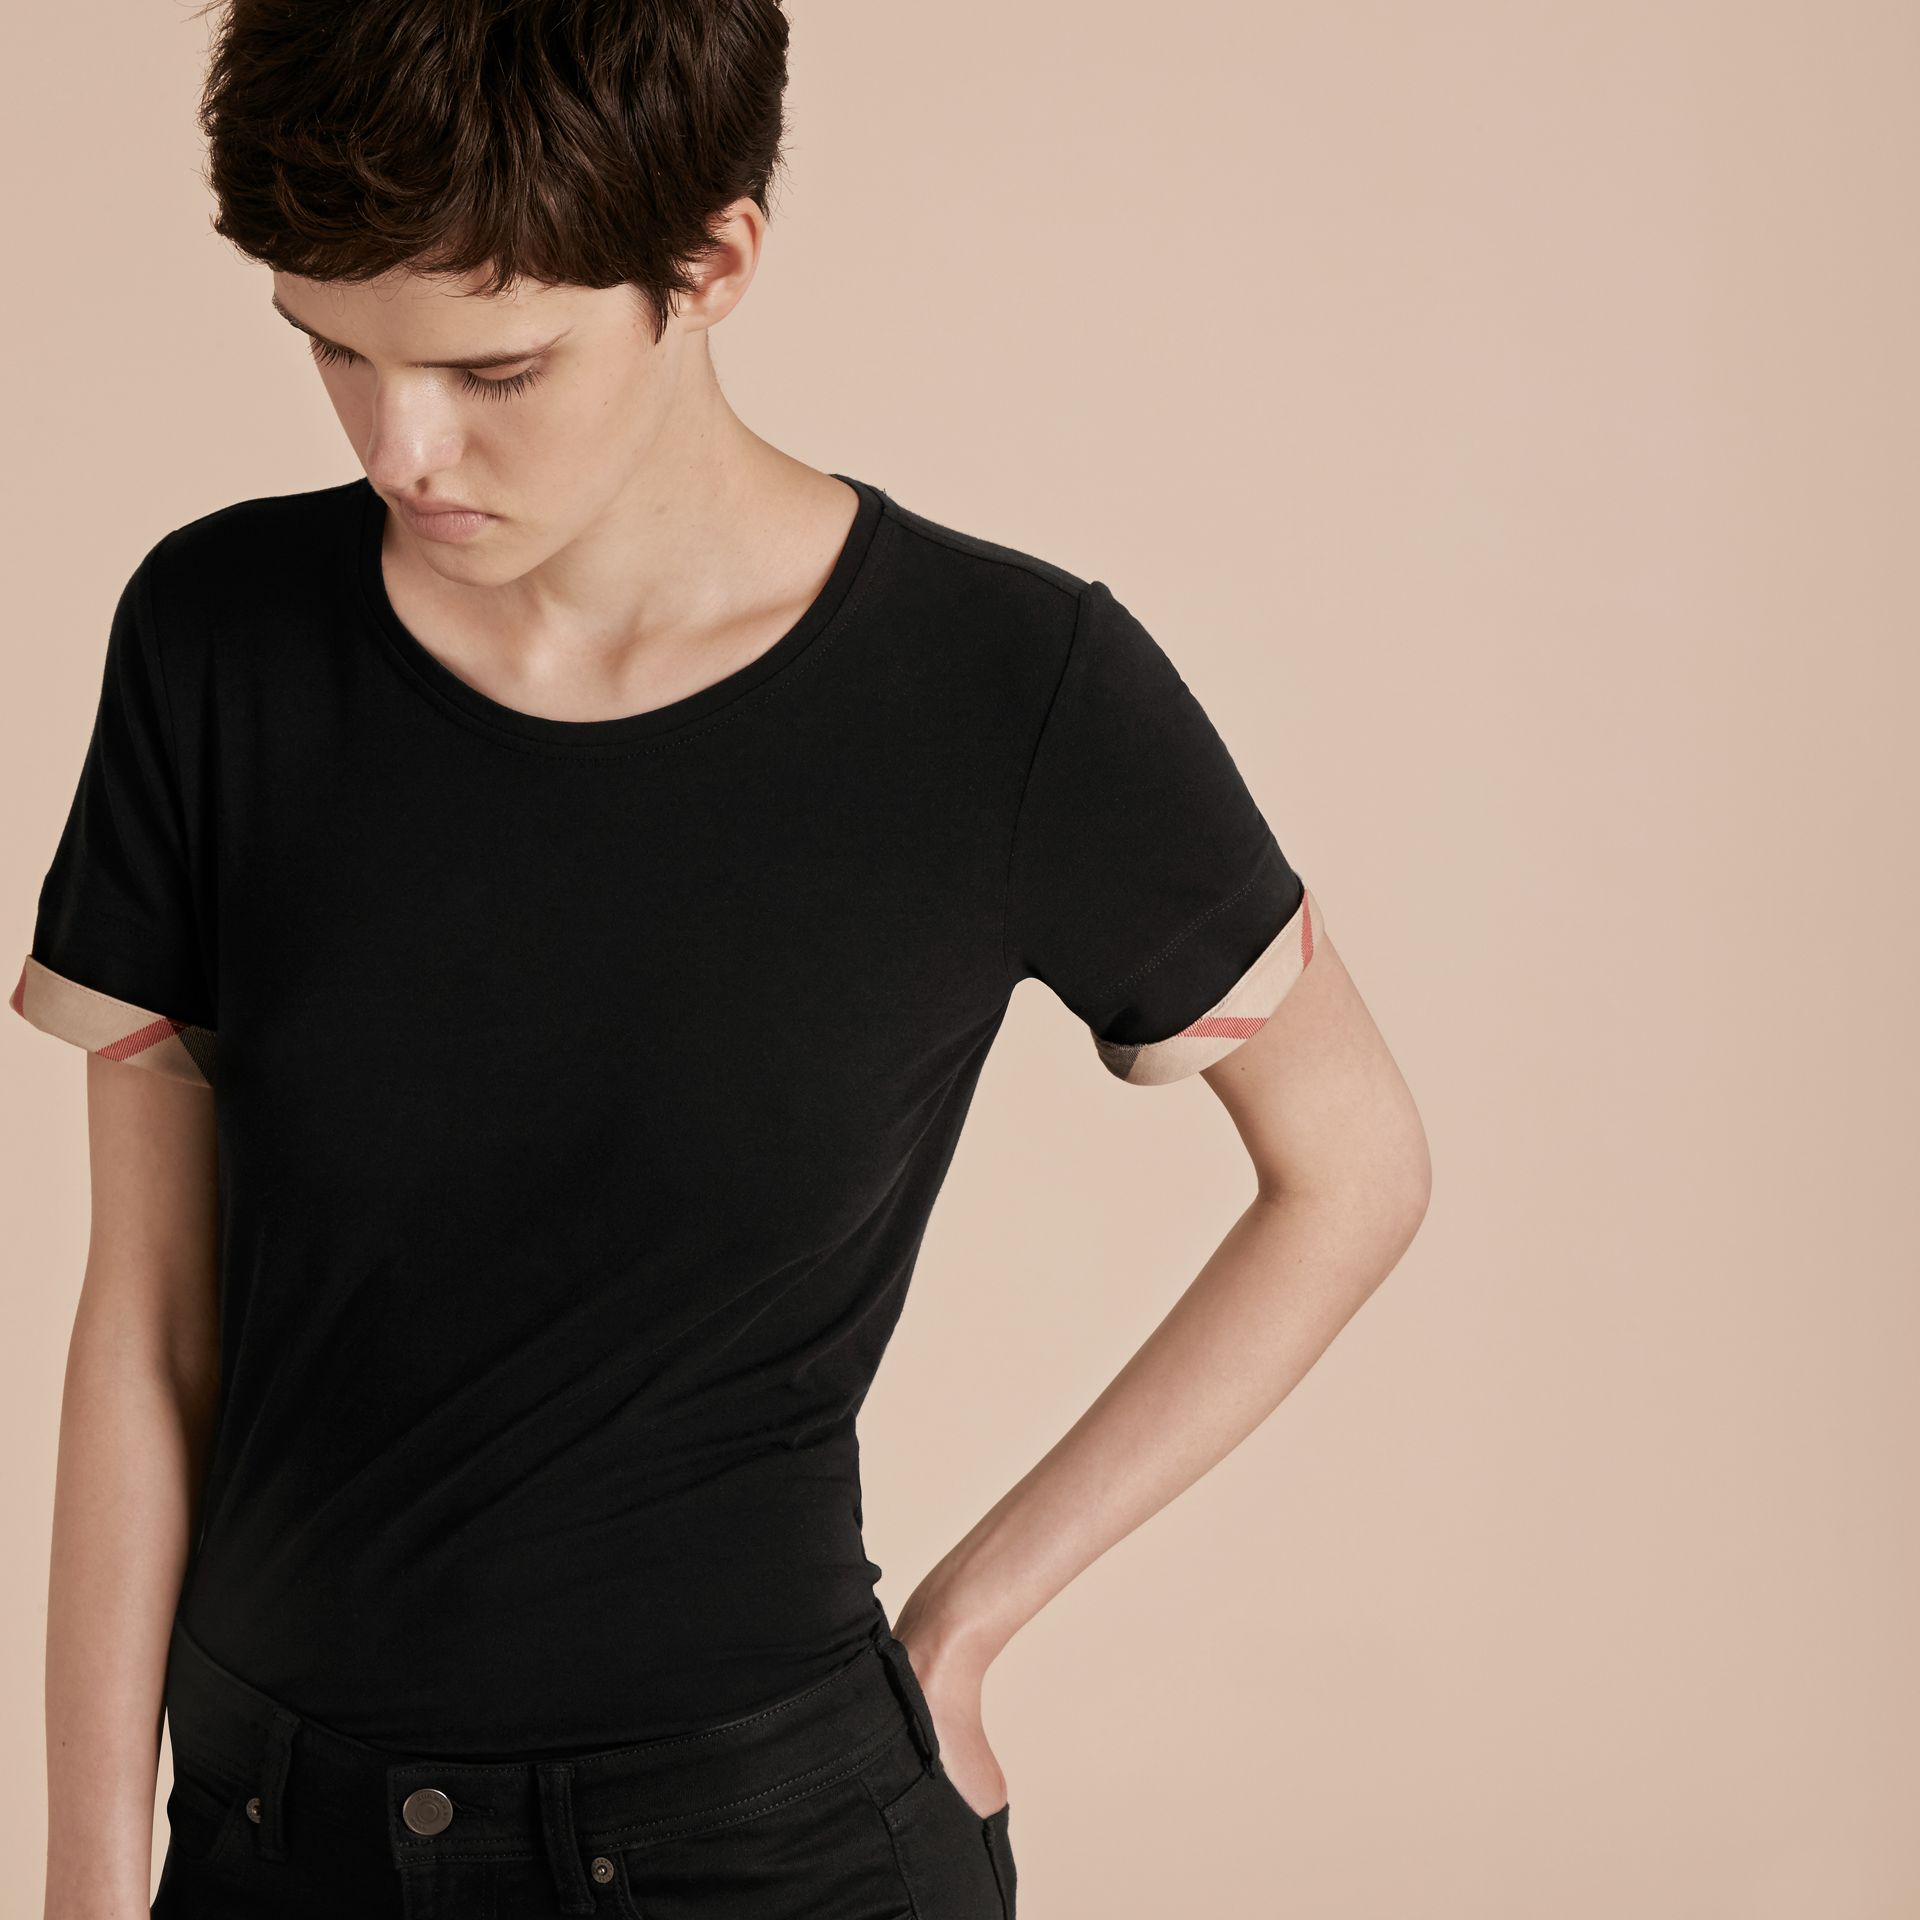 Black Check Cuff Stretch Cotton T-Shirt Black - gallery image 5